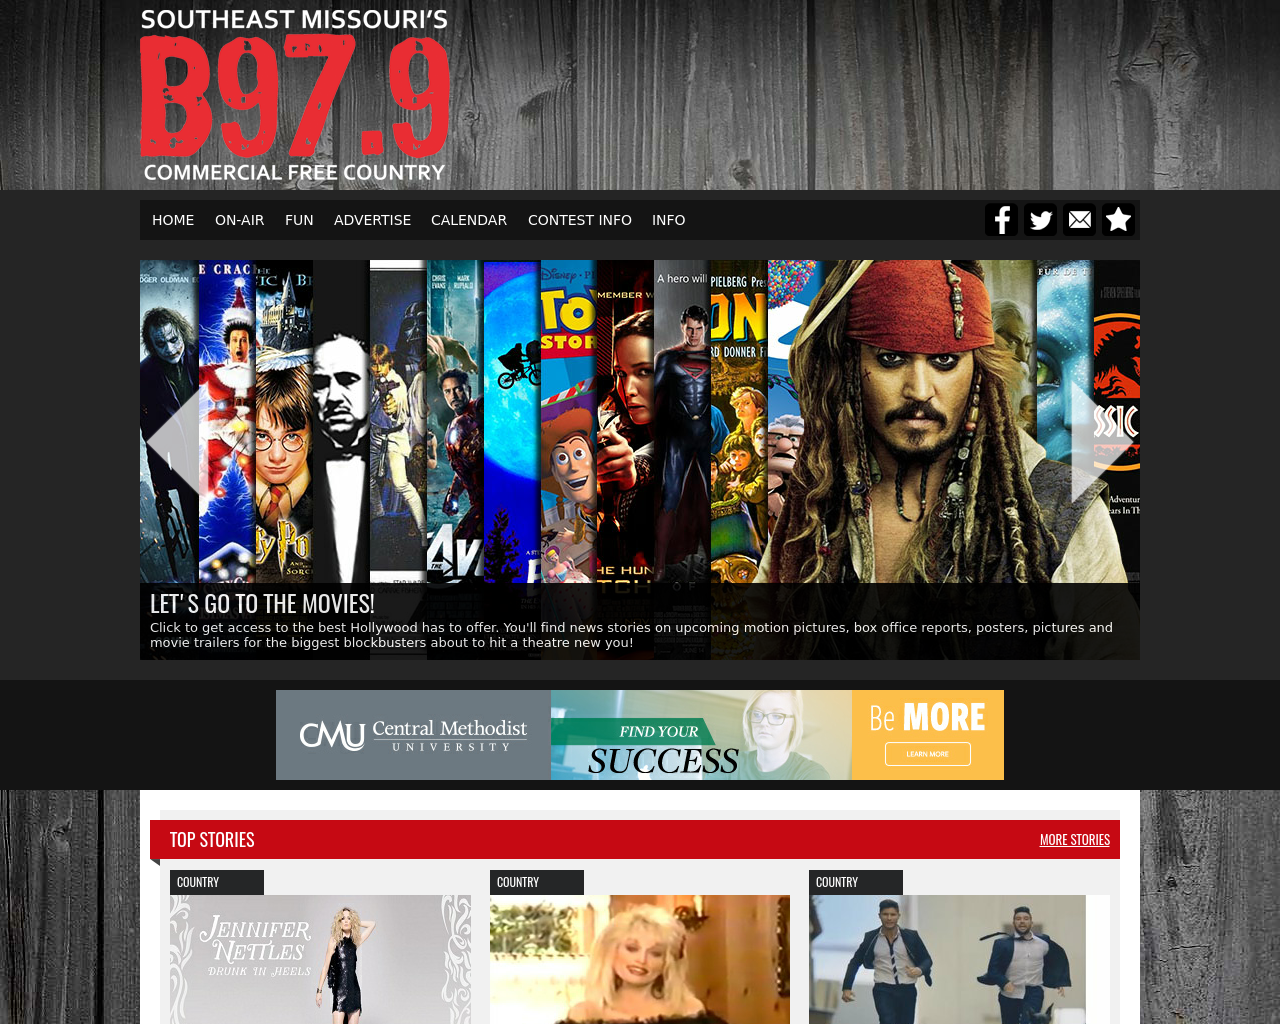 New-Country-B97.9-Advertising-Reviews-Pricing